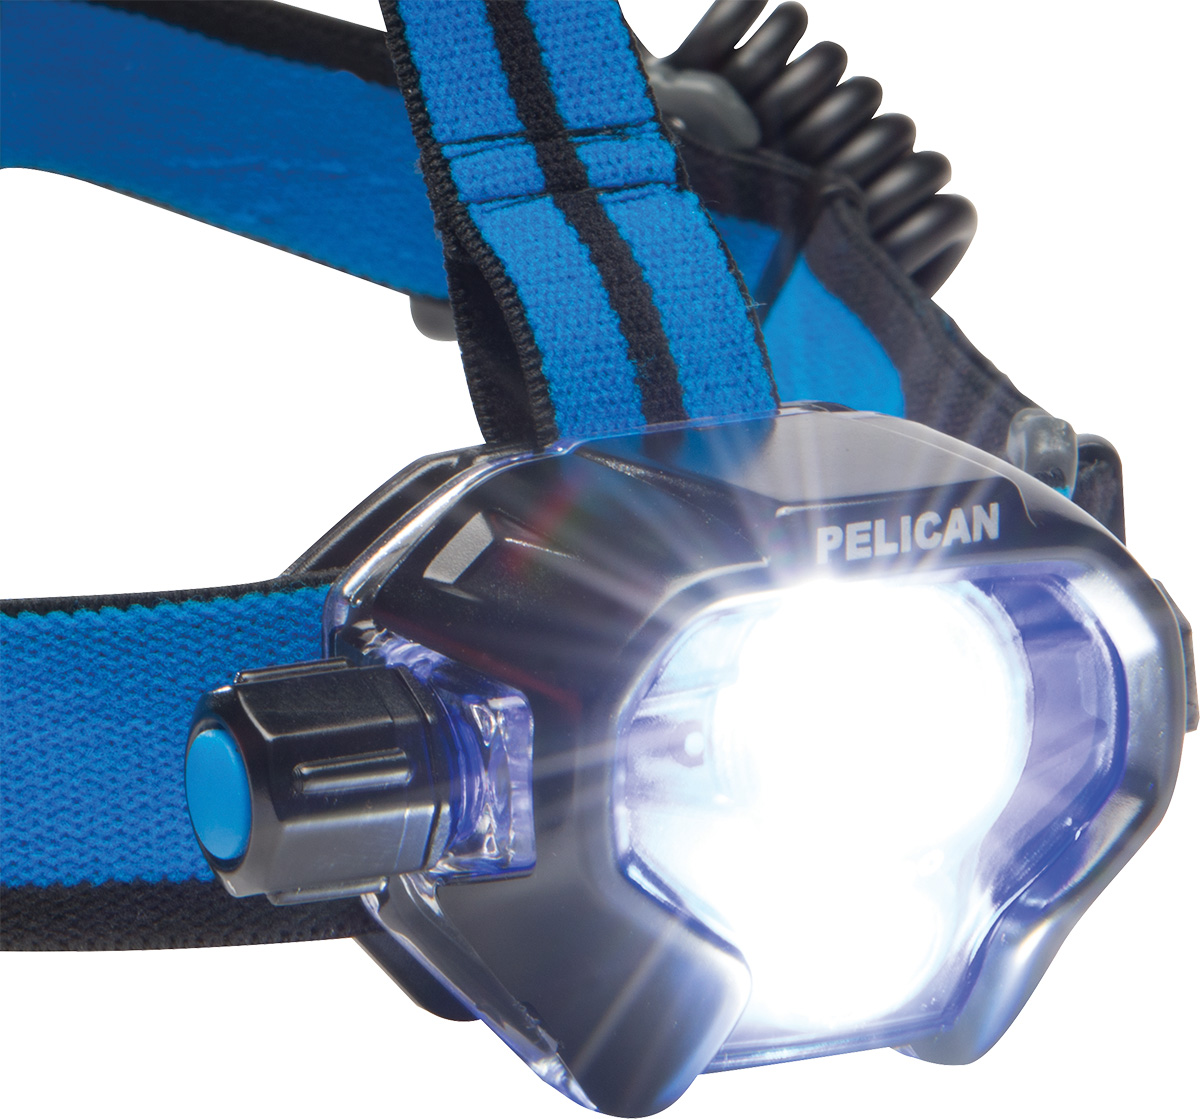 pelican 2780r super bright high lumens headlamp